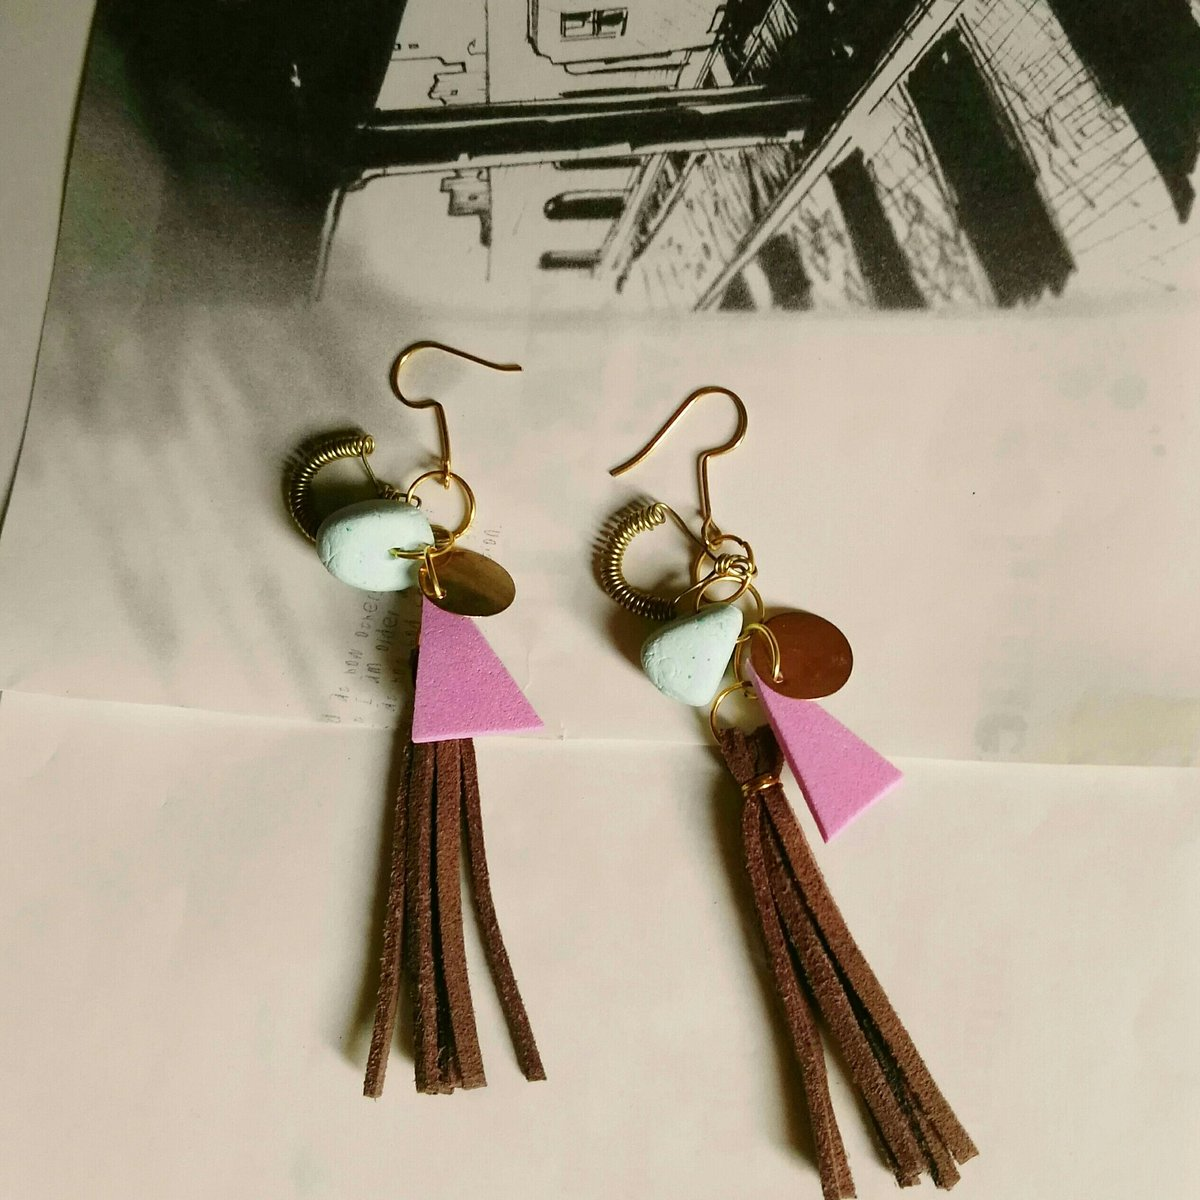 6d68e4d40dadb ... It s a long earrings handmade using leather and modeling clay bead and  wires  اكسسوارات  تصميم  الأنثى  الجمال  السودان  accessories   handmadejewelry ...